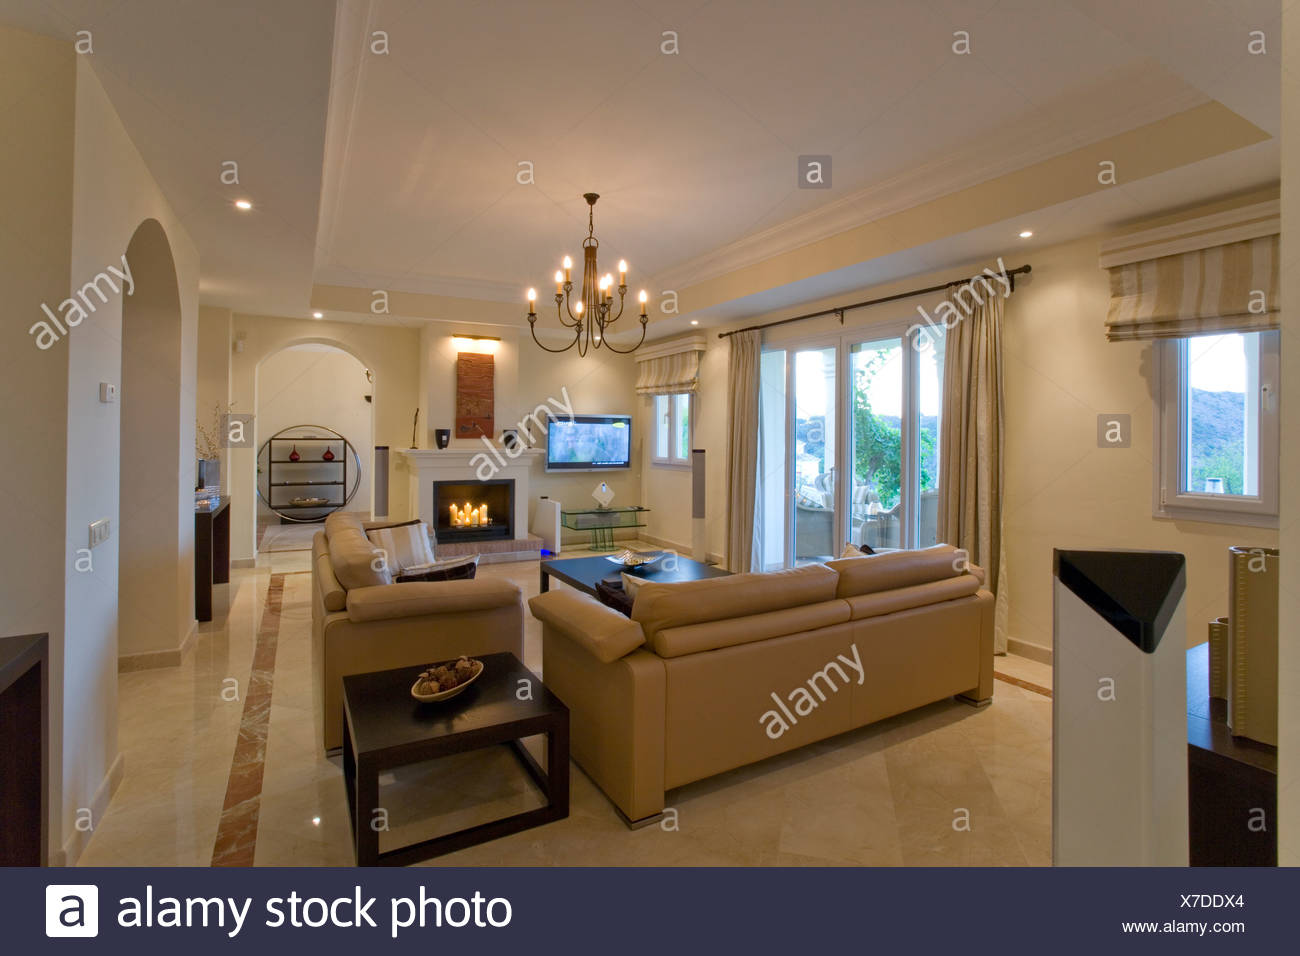 Beige Leather Sofa In Apartment Livingroom With Fireplace And Marble Floor Stock Photo Alamy